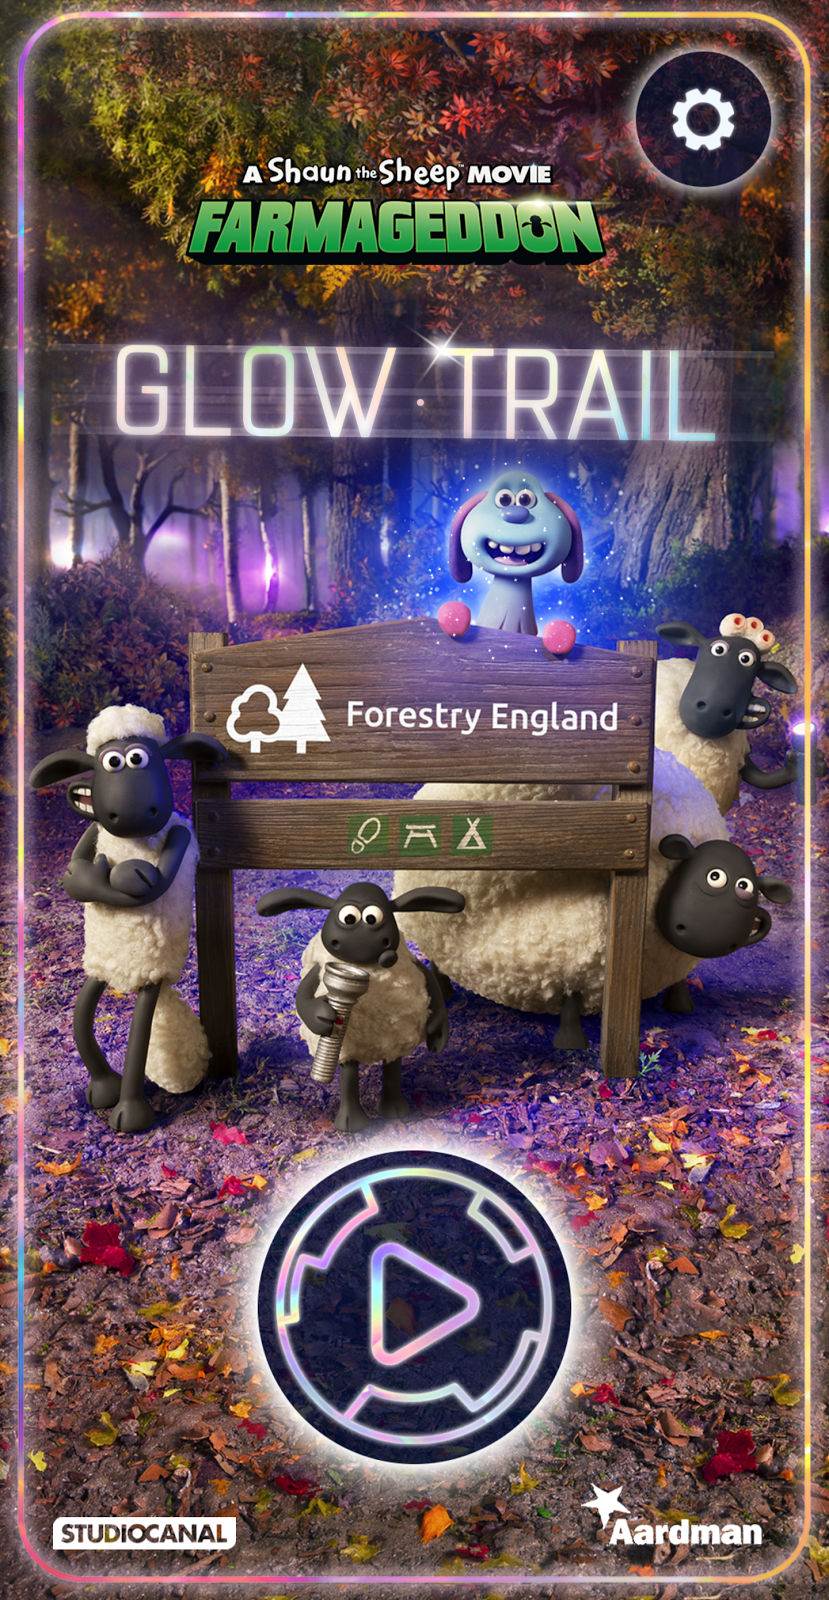 Shaun the Sheep Farmageddon Glow Trail at Hamsterley Forest - Top Tips for Visiting  - Glow Trail App